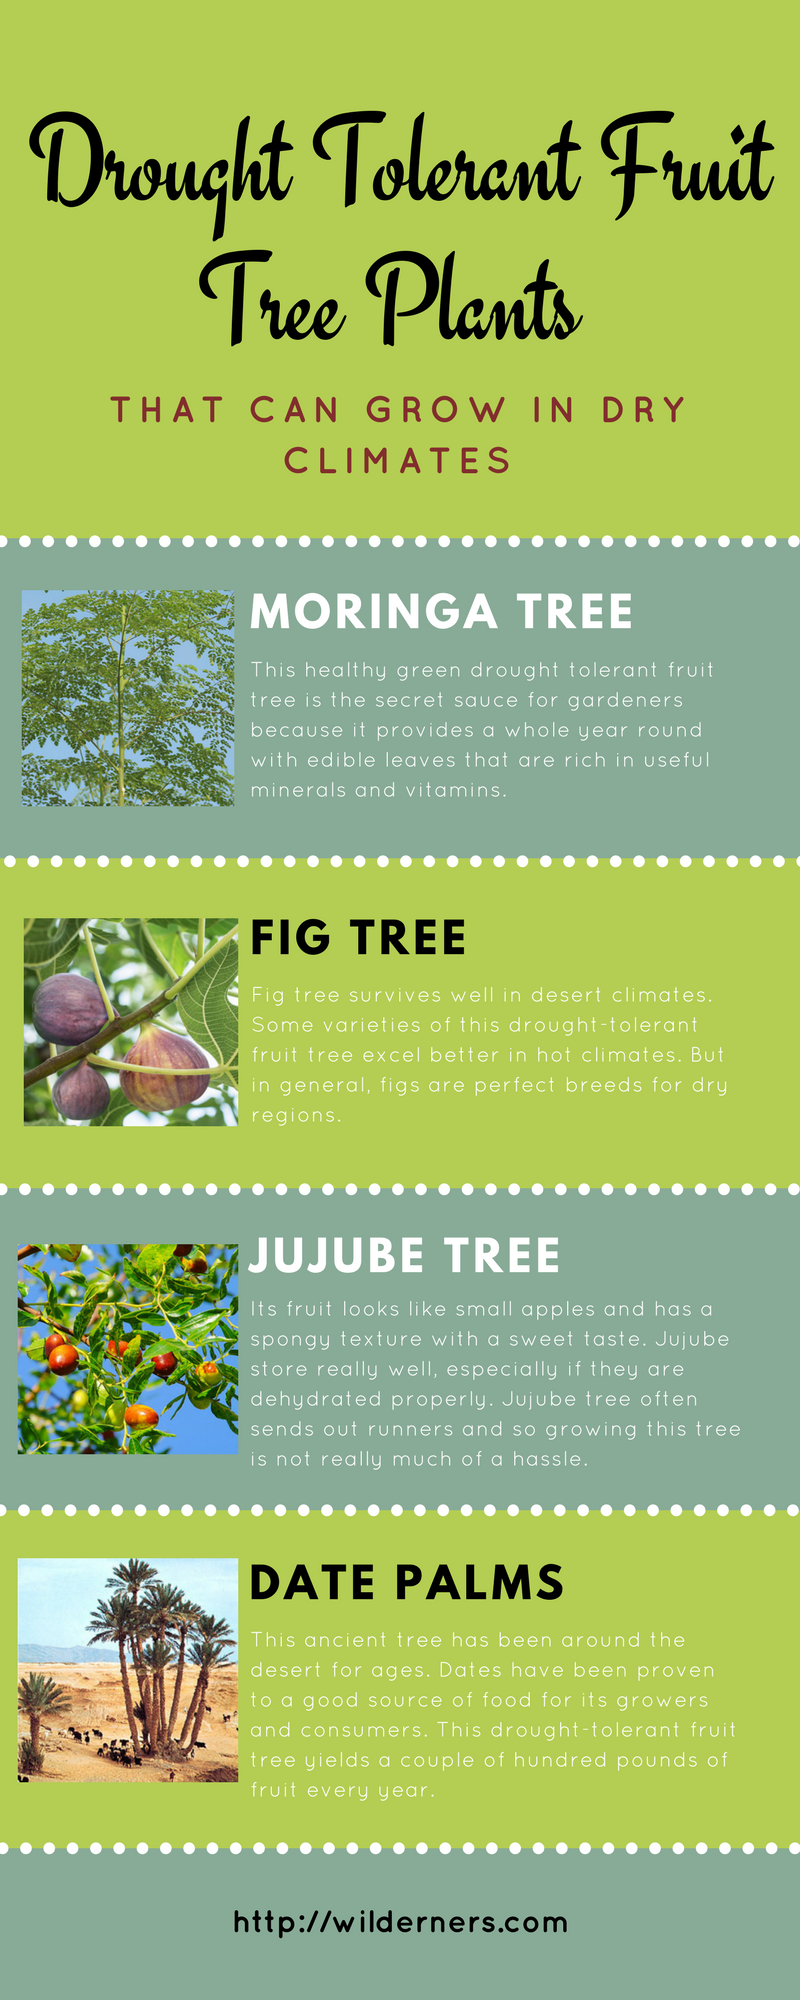 Drought Tolerant Fruit Tree Plants That Can Grow In Dry Climates Dry Climates Drought Tolerant Fruit Trees